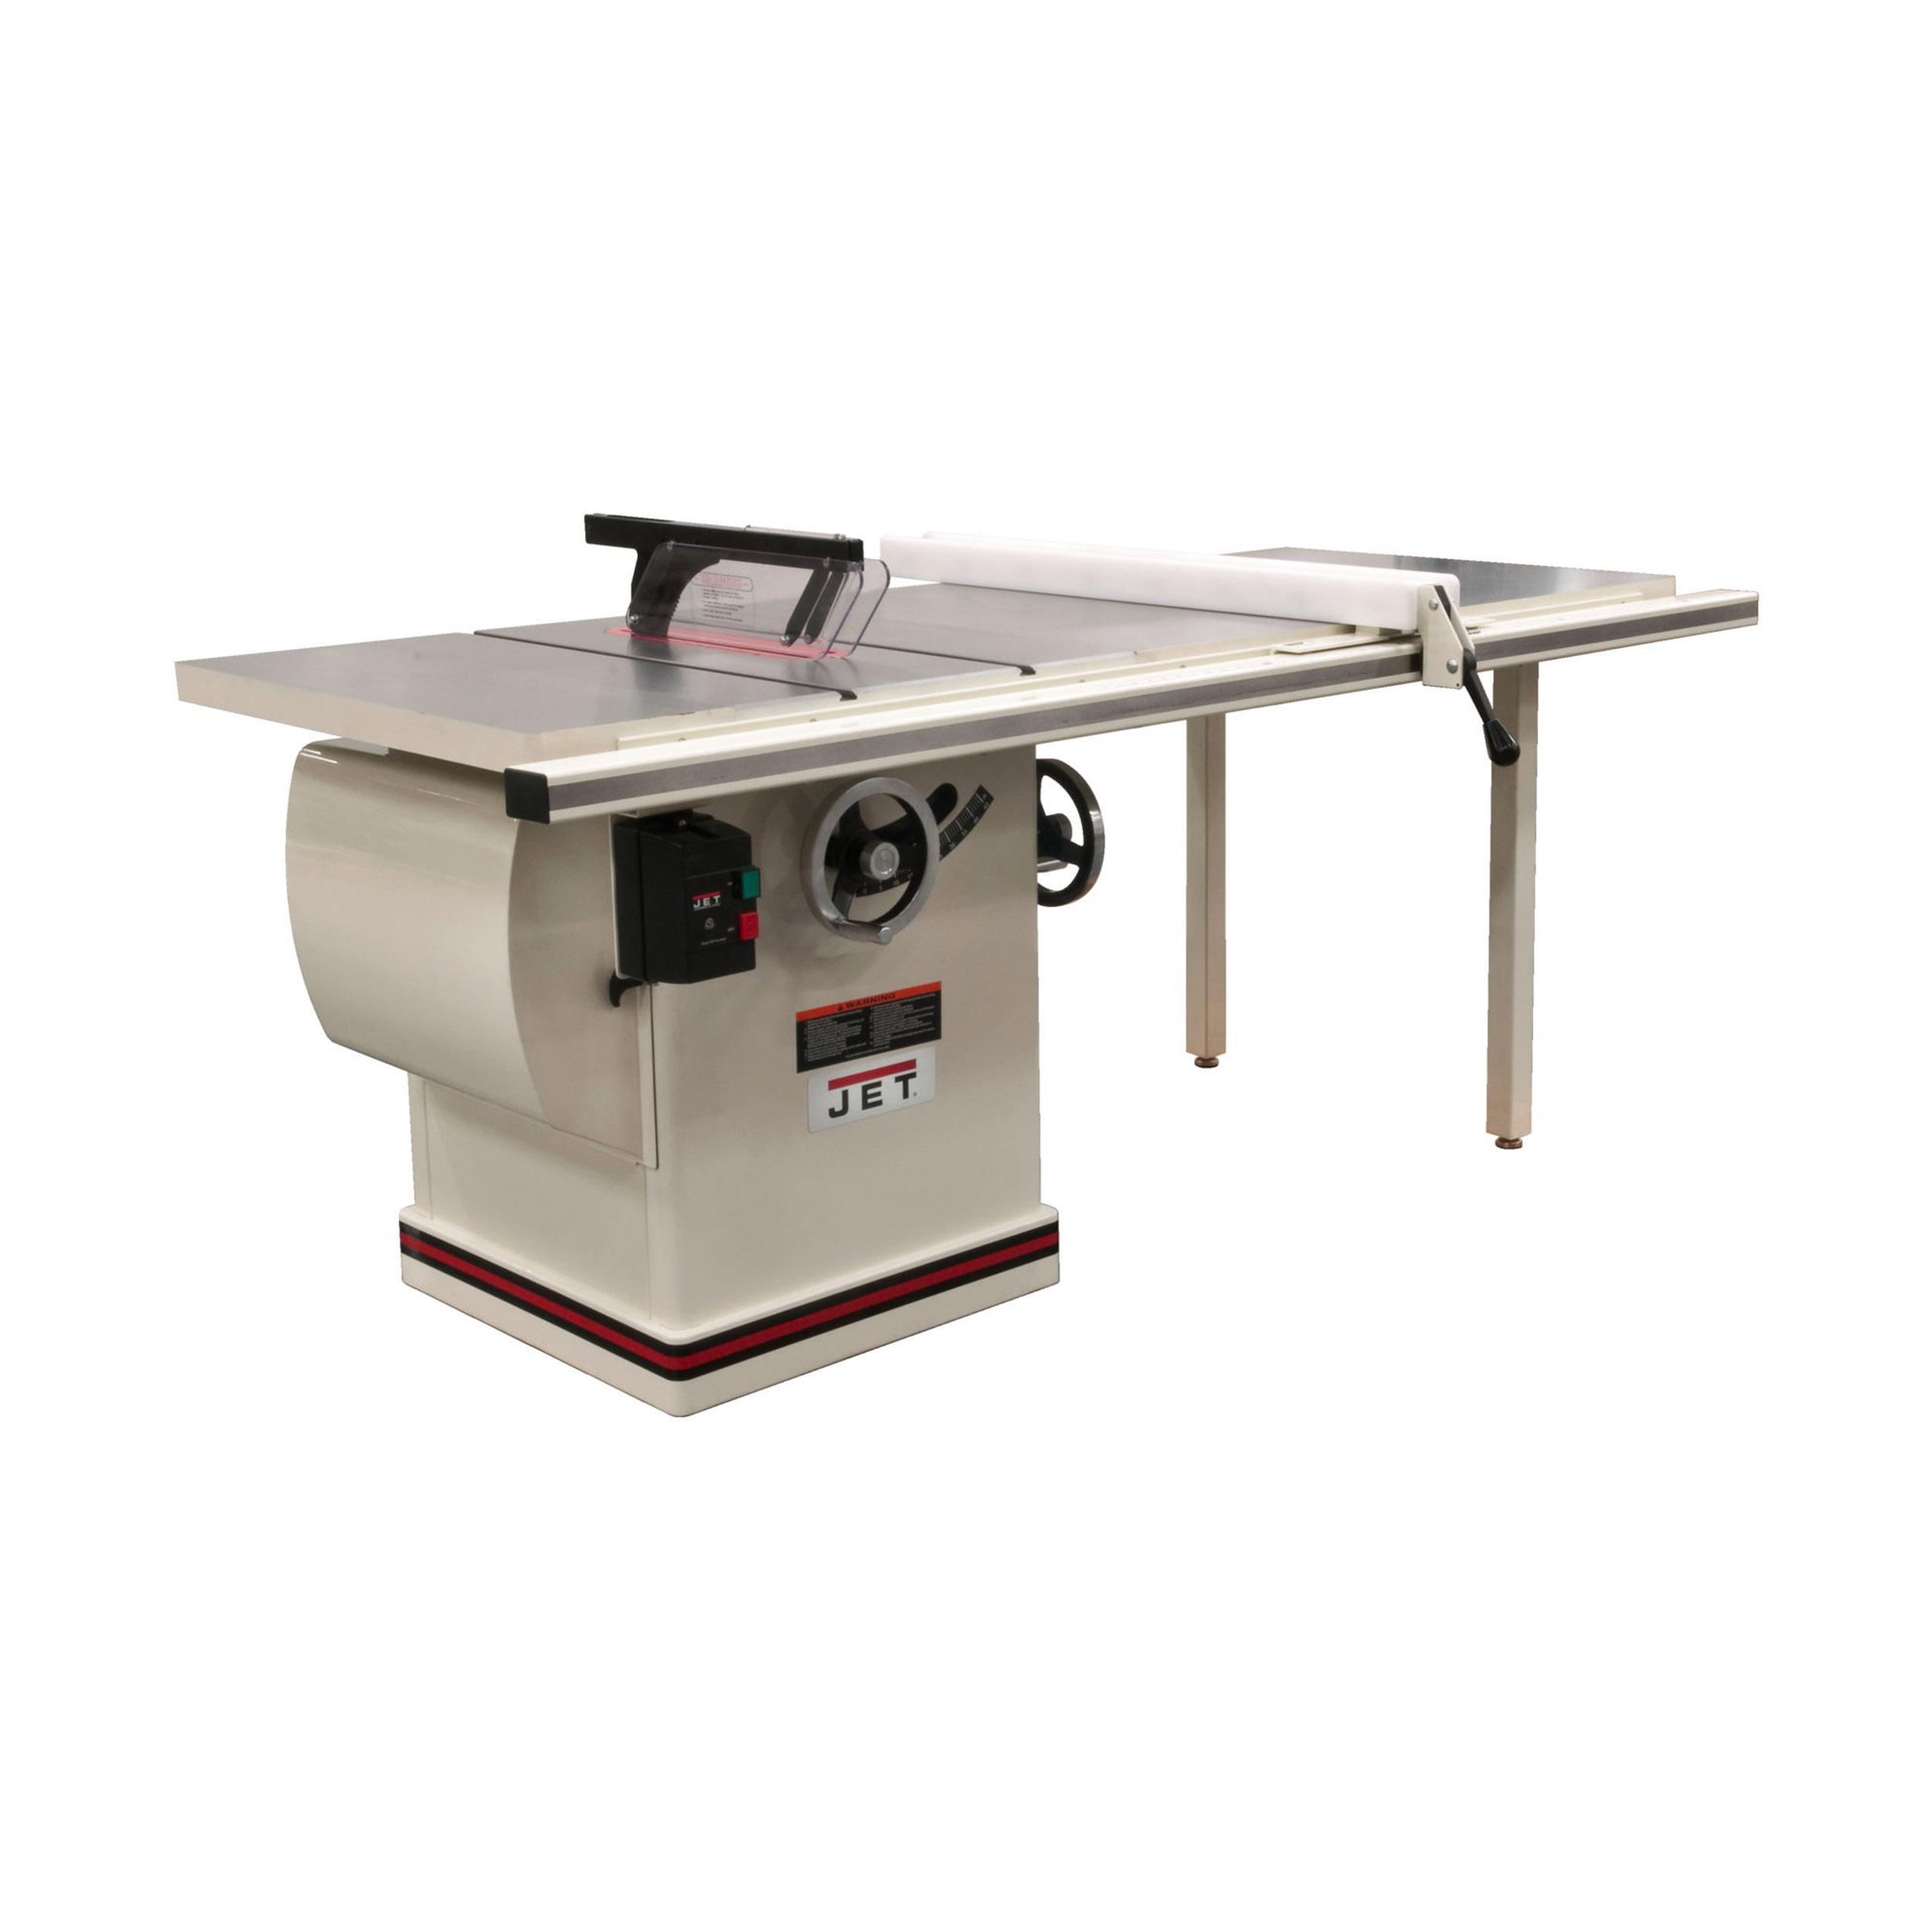 XACTASAW Deluxe Table Saw 5HP, 1 Ph, 50